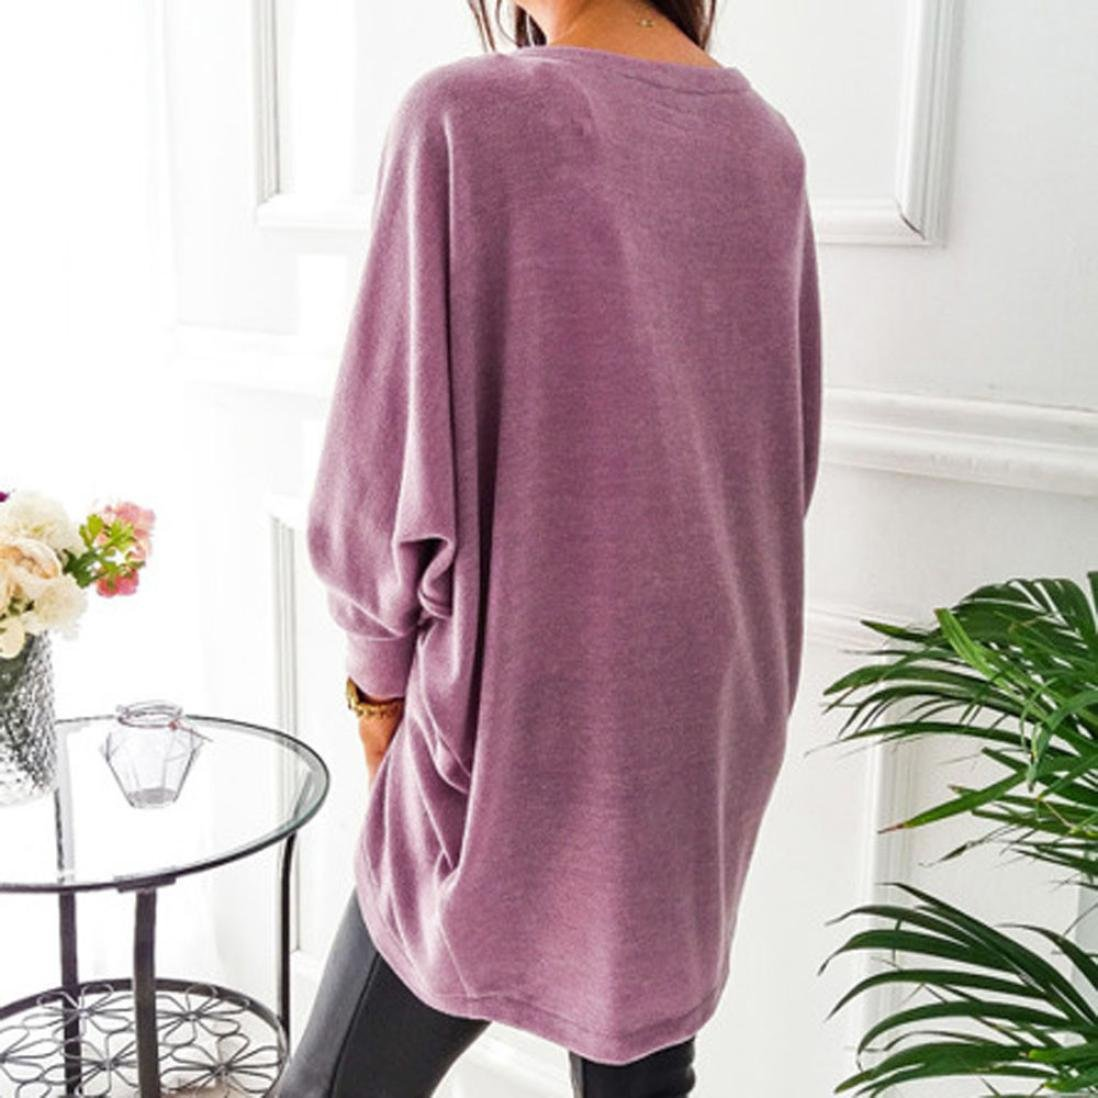 Hot Sale!Women's Cardigans Neartime Womens Kintted Cardigan Asymmetric Sweater Hem Long Sleeve Coat Tops (L, Pink) by NEARTIME (Image #5)